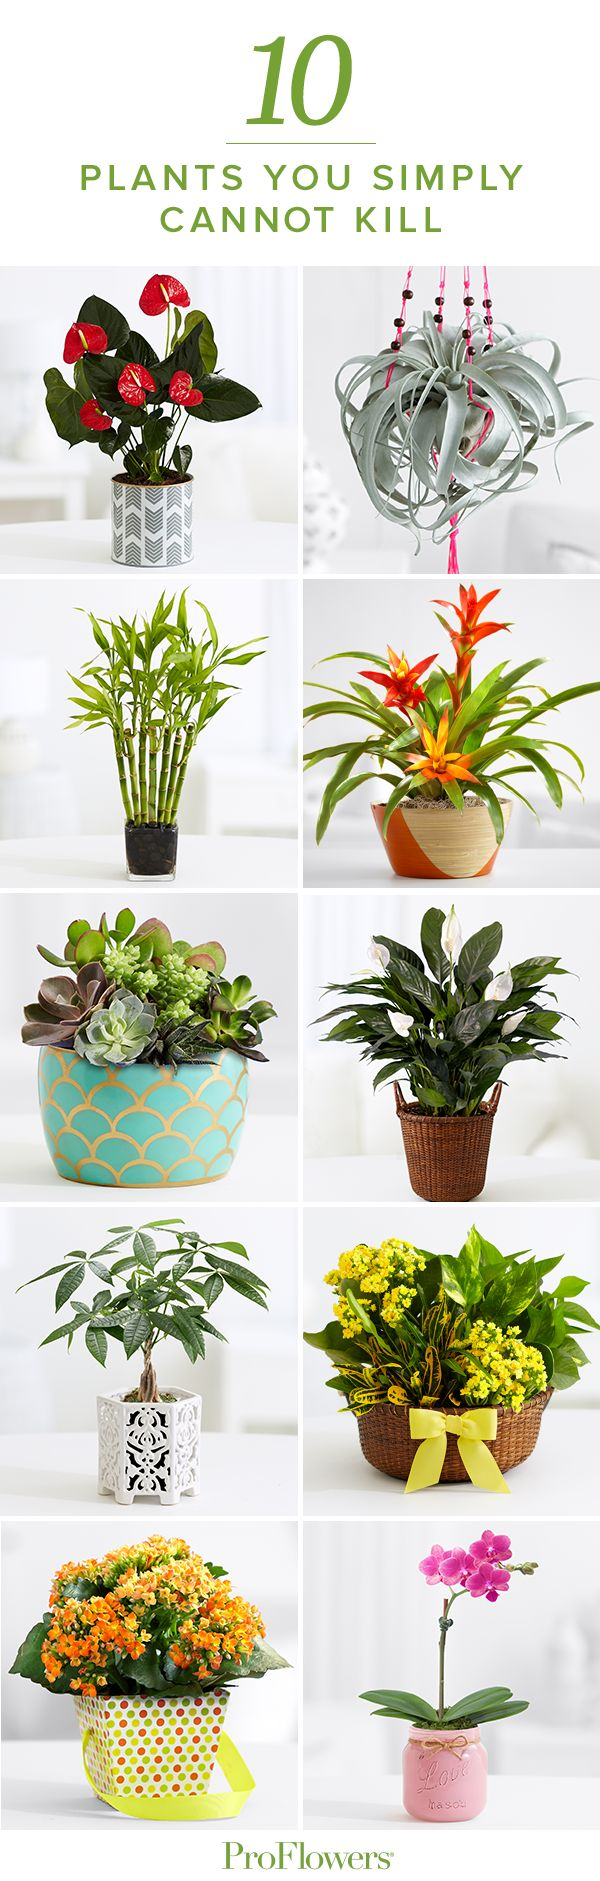 10 Plants You Can't Kill: No Green Thumb Needed